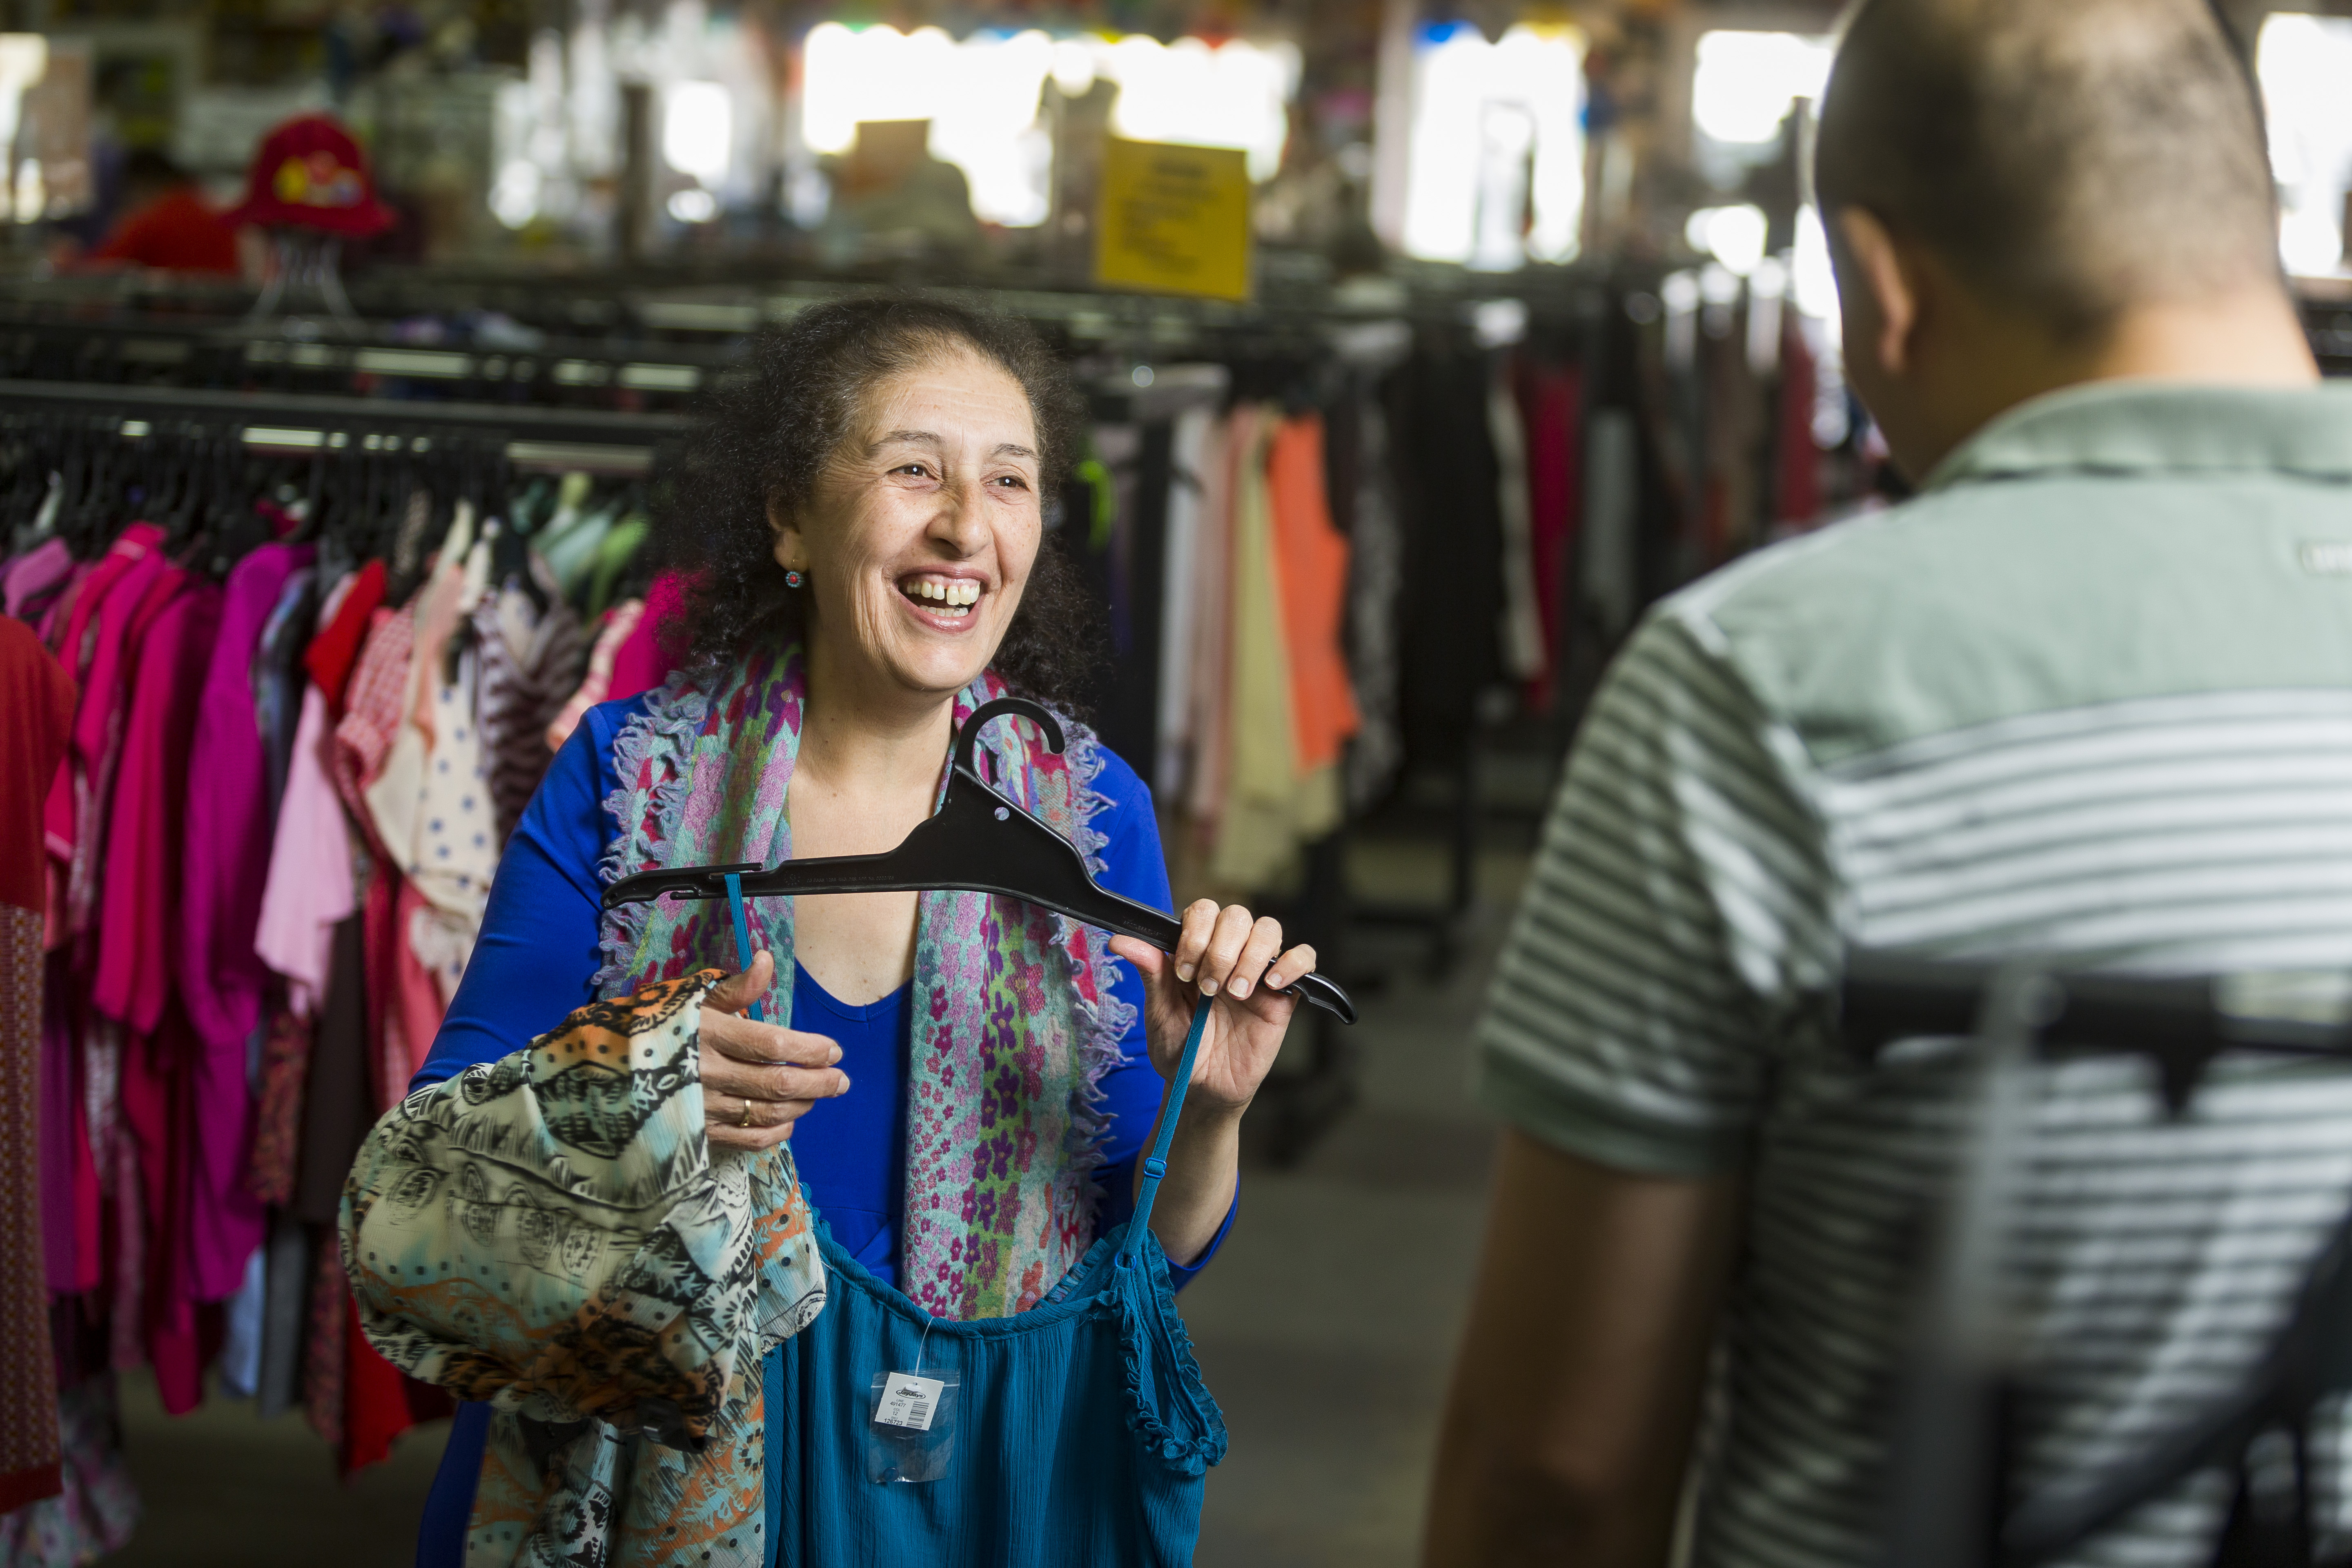 BSL op shops are currently closed under Stage 4 restrictions. We look forward to seeing Rosemary and the Brunswick Store team, and all Melbourne metropolitan stores back on deck when restrictions allow.